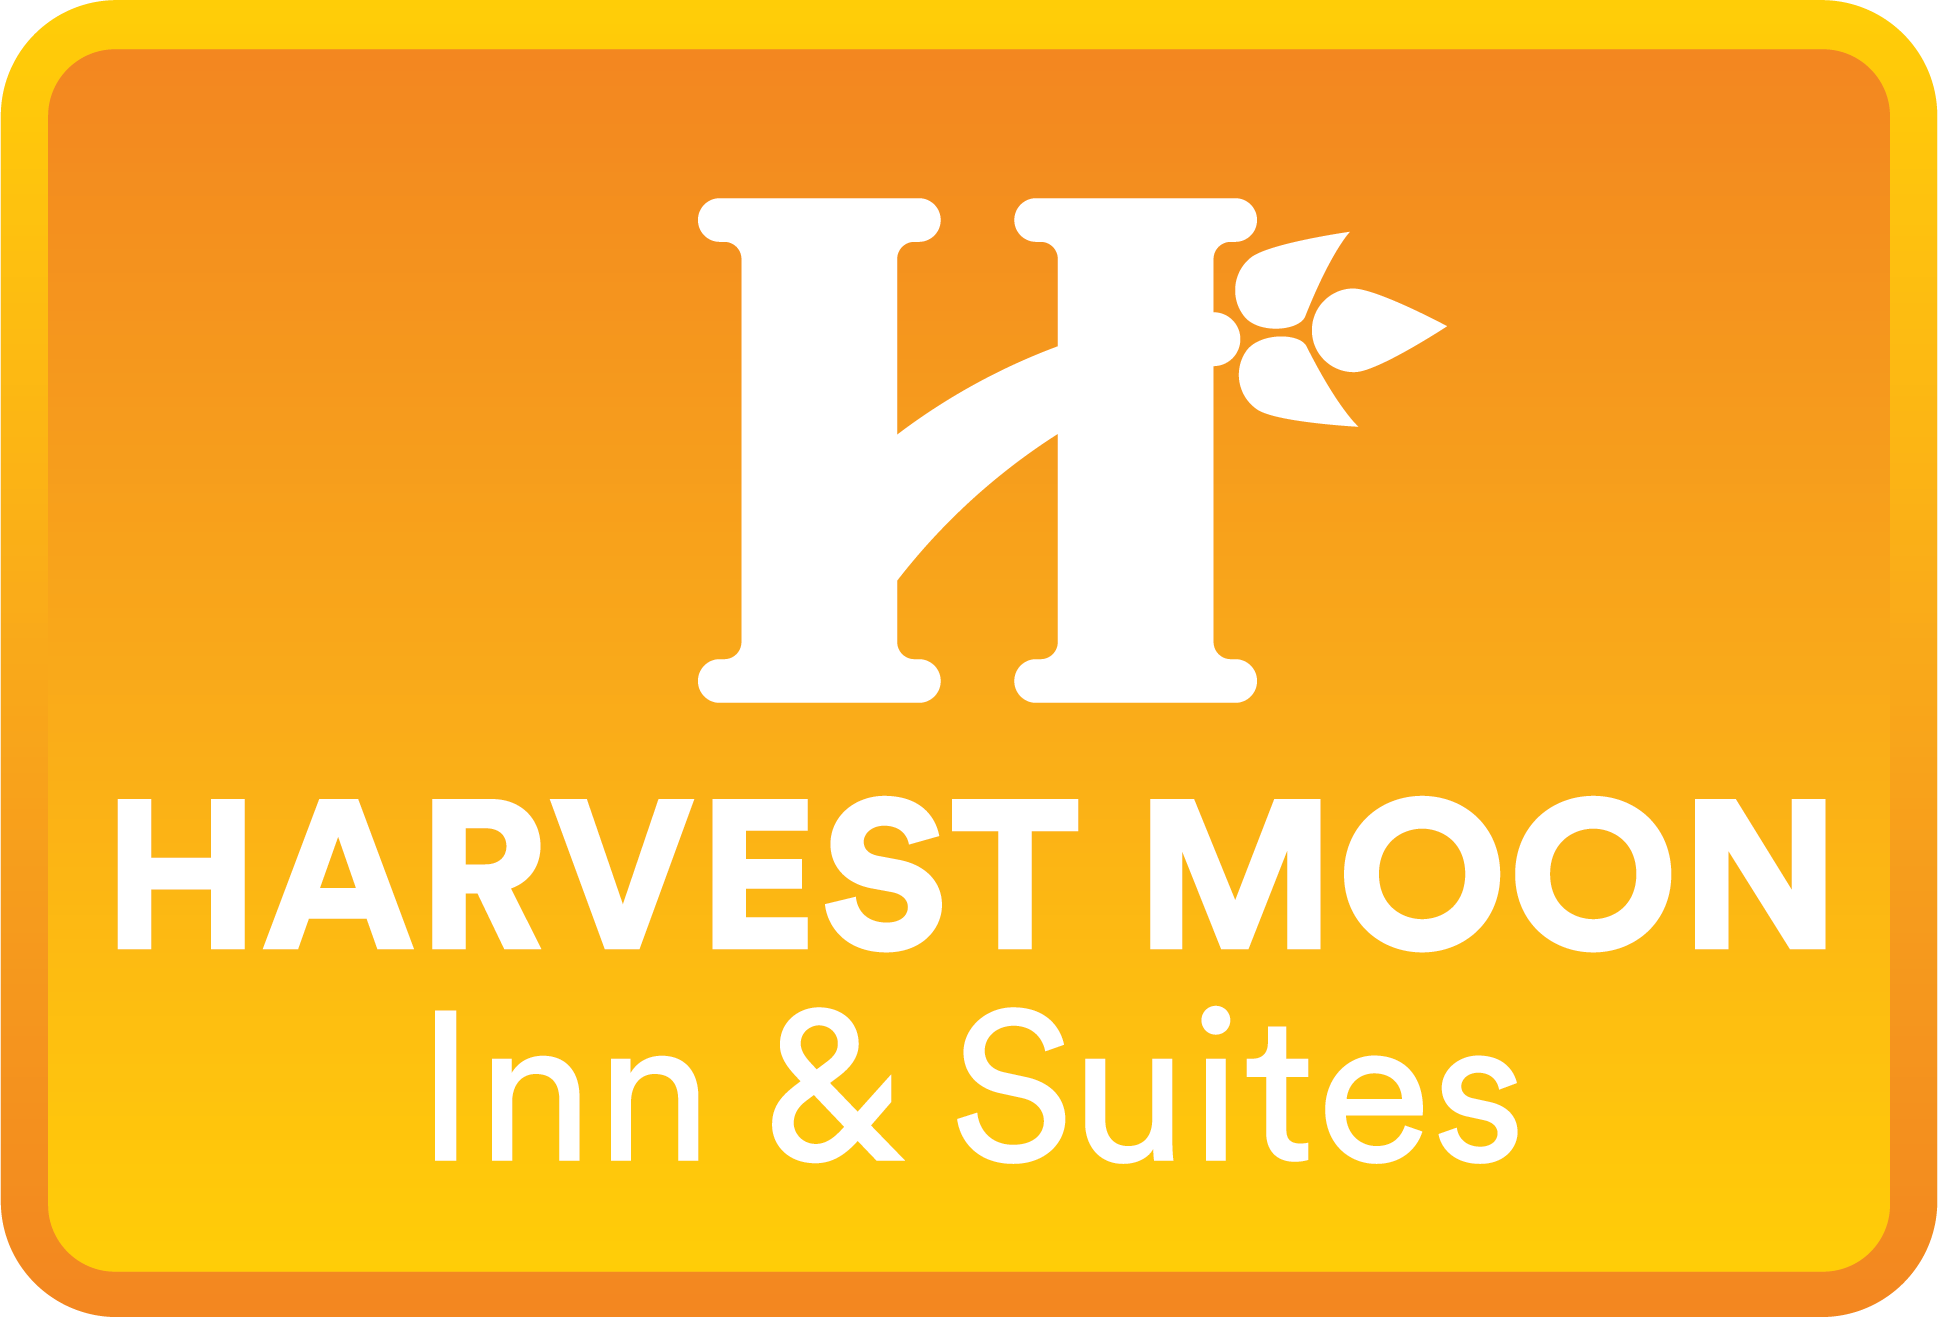 Harvest Moon Inn & Suites